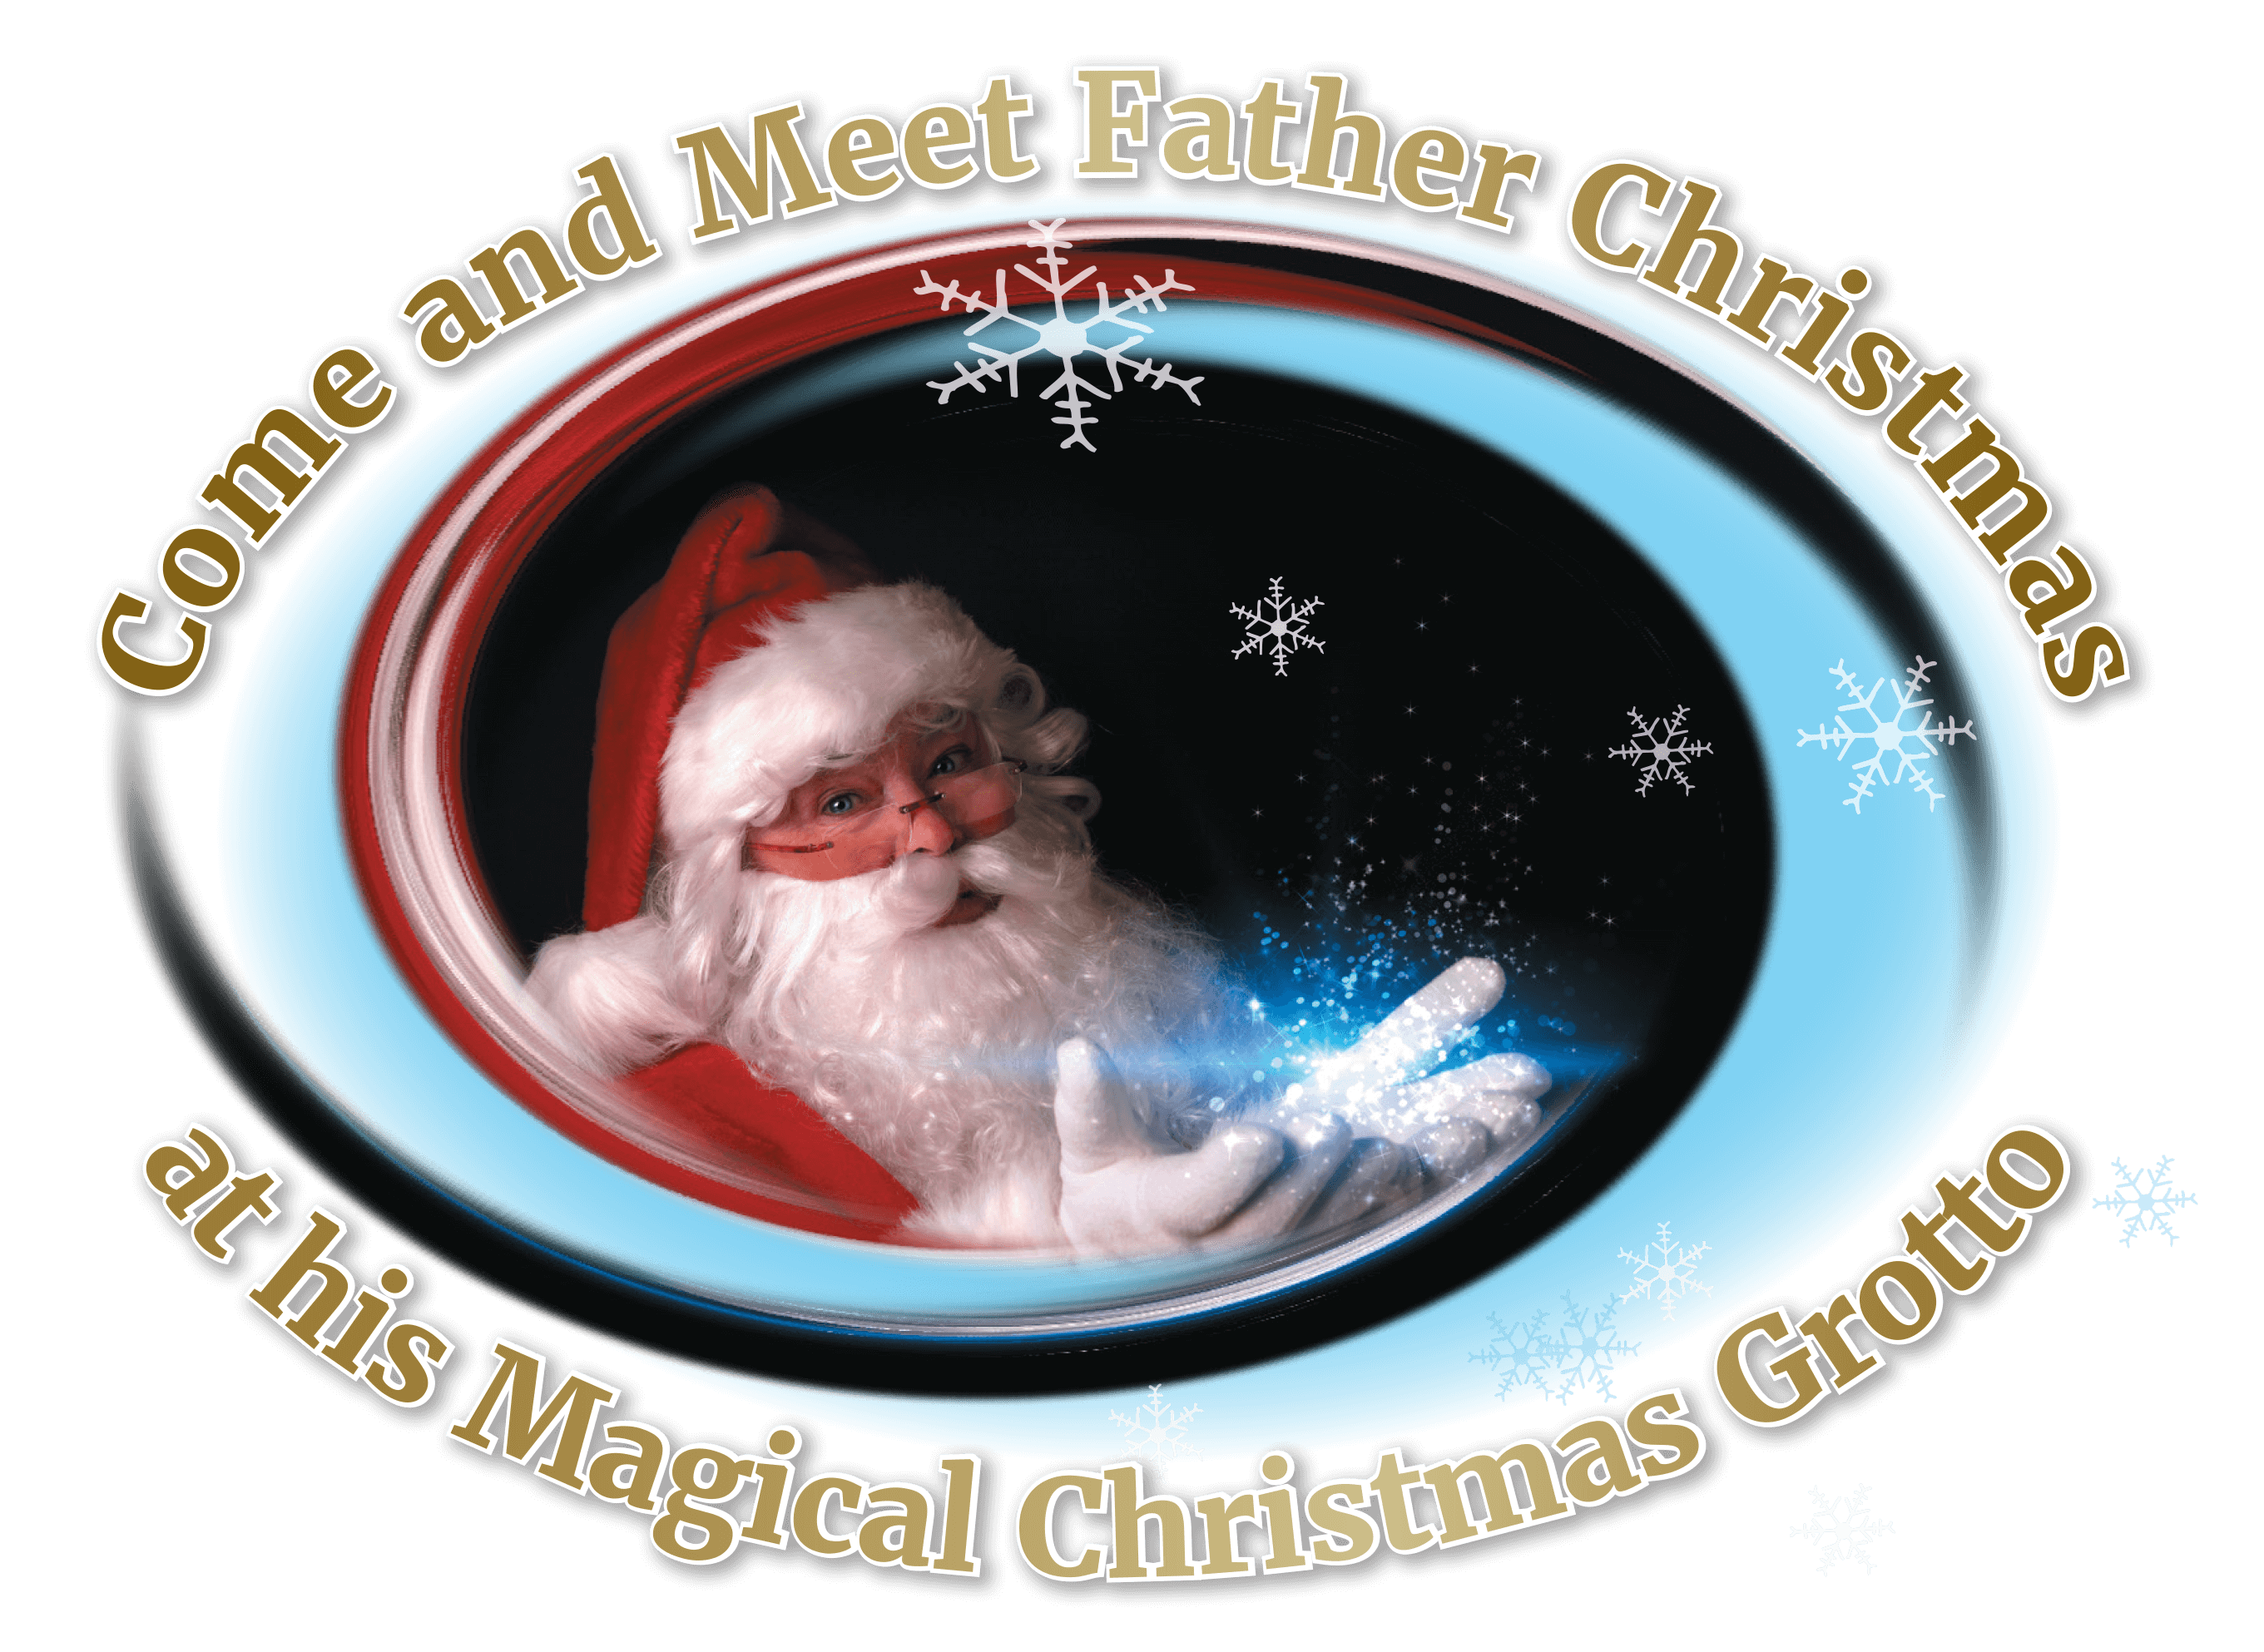 Come and meet Santa at the Christmas Grotto